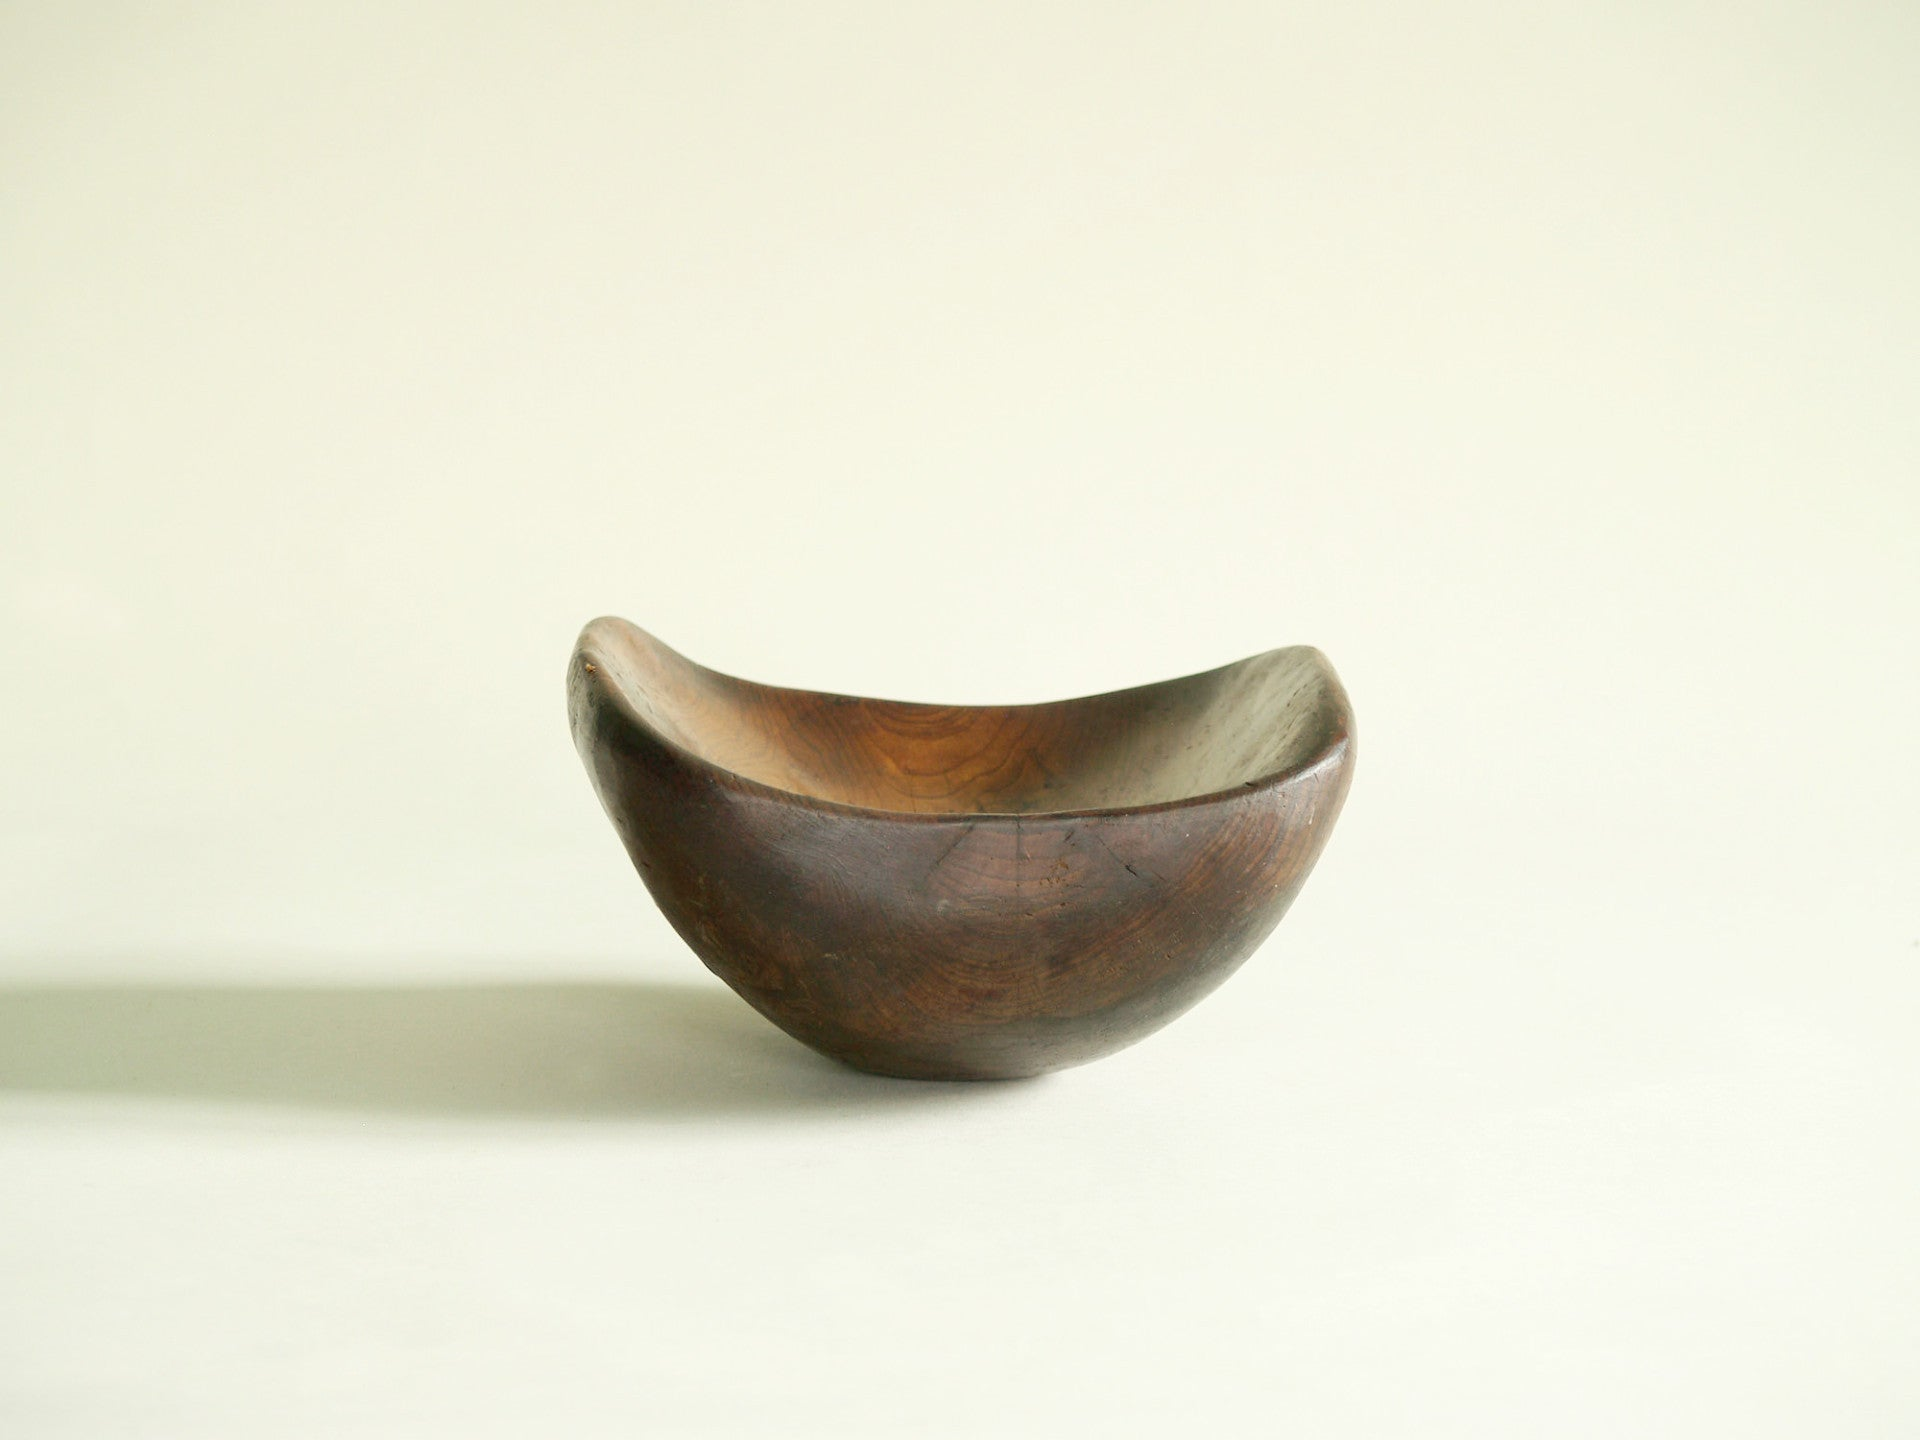 Coupe monoxyle culbuto en orme, France (vers 1950)..Large carved elm wood culbuto Bowl, France (circa 1950)